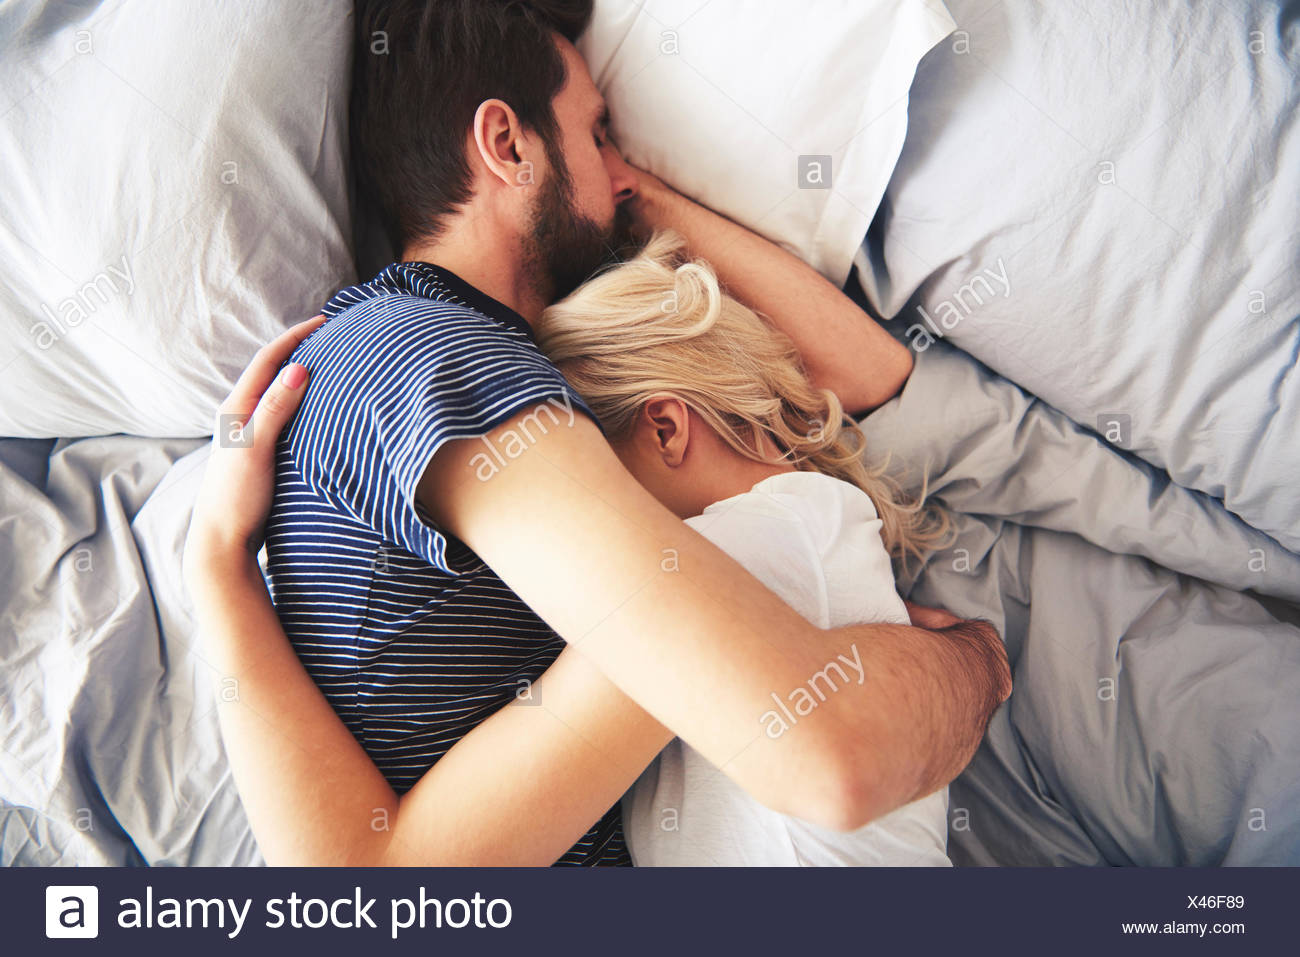 Couple lying in bed together, sleeping, arms around each other - Stock Image